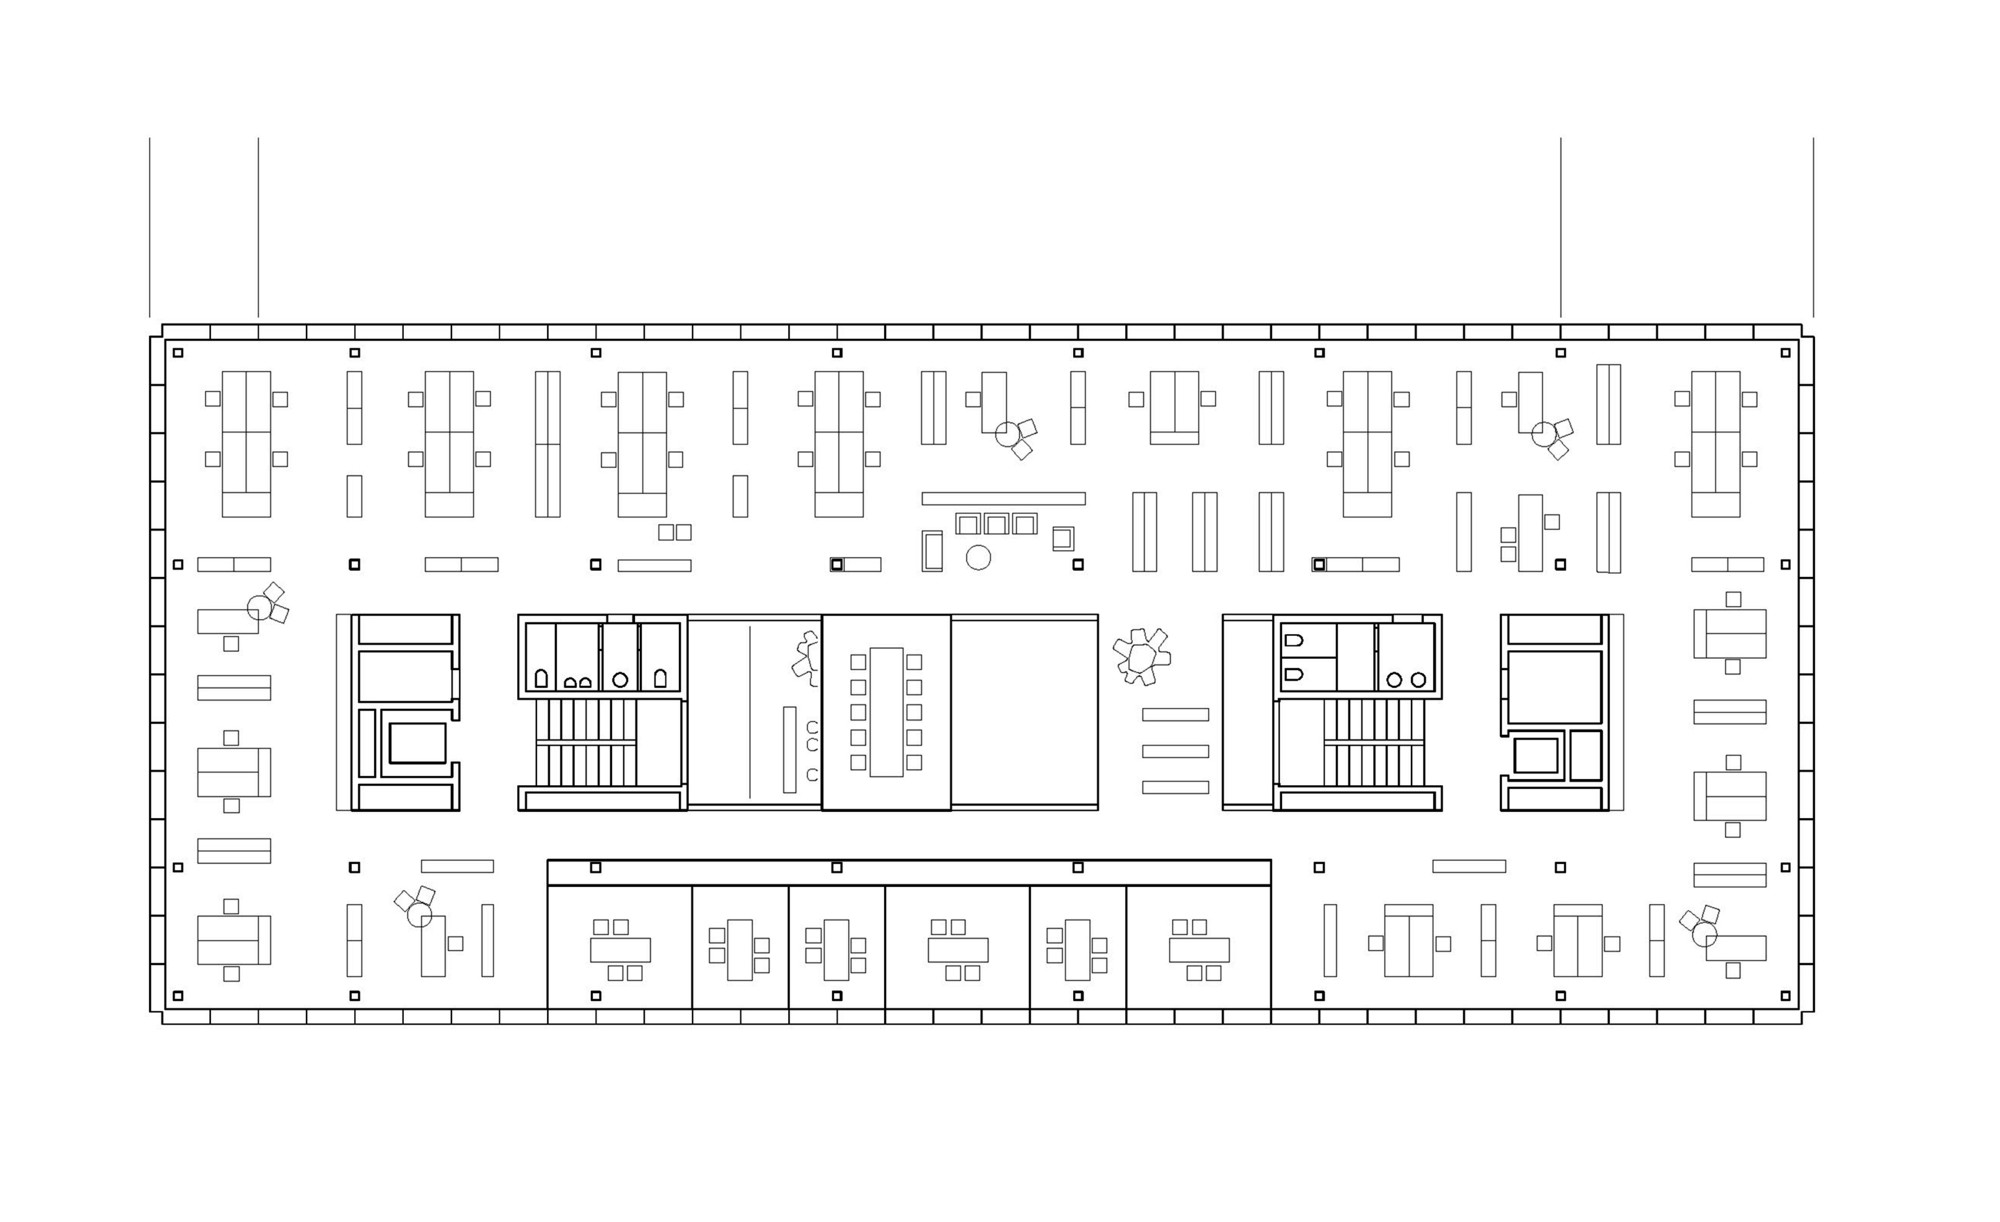 open office floor plans. Office Building 200 Floor Plan Gallery of  Nissen Wentzlaff Architekten 10